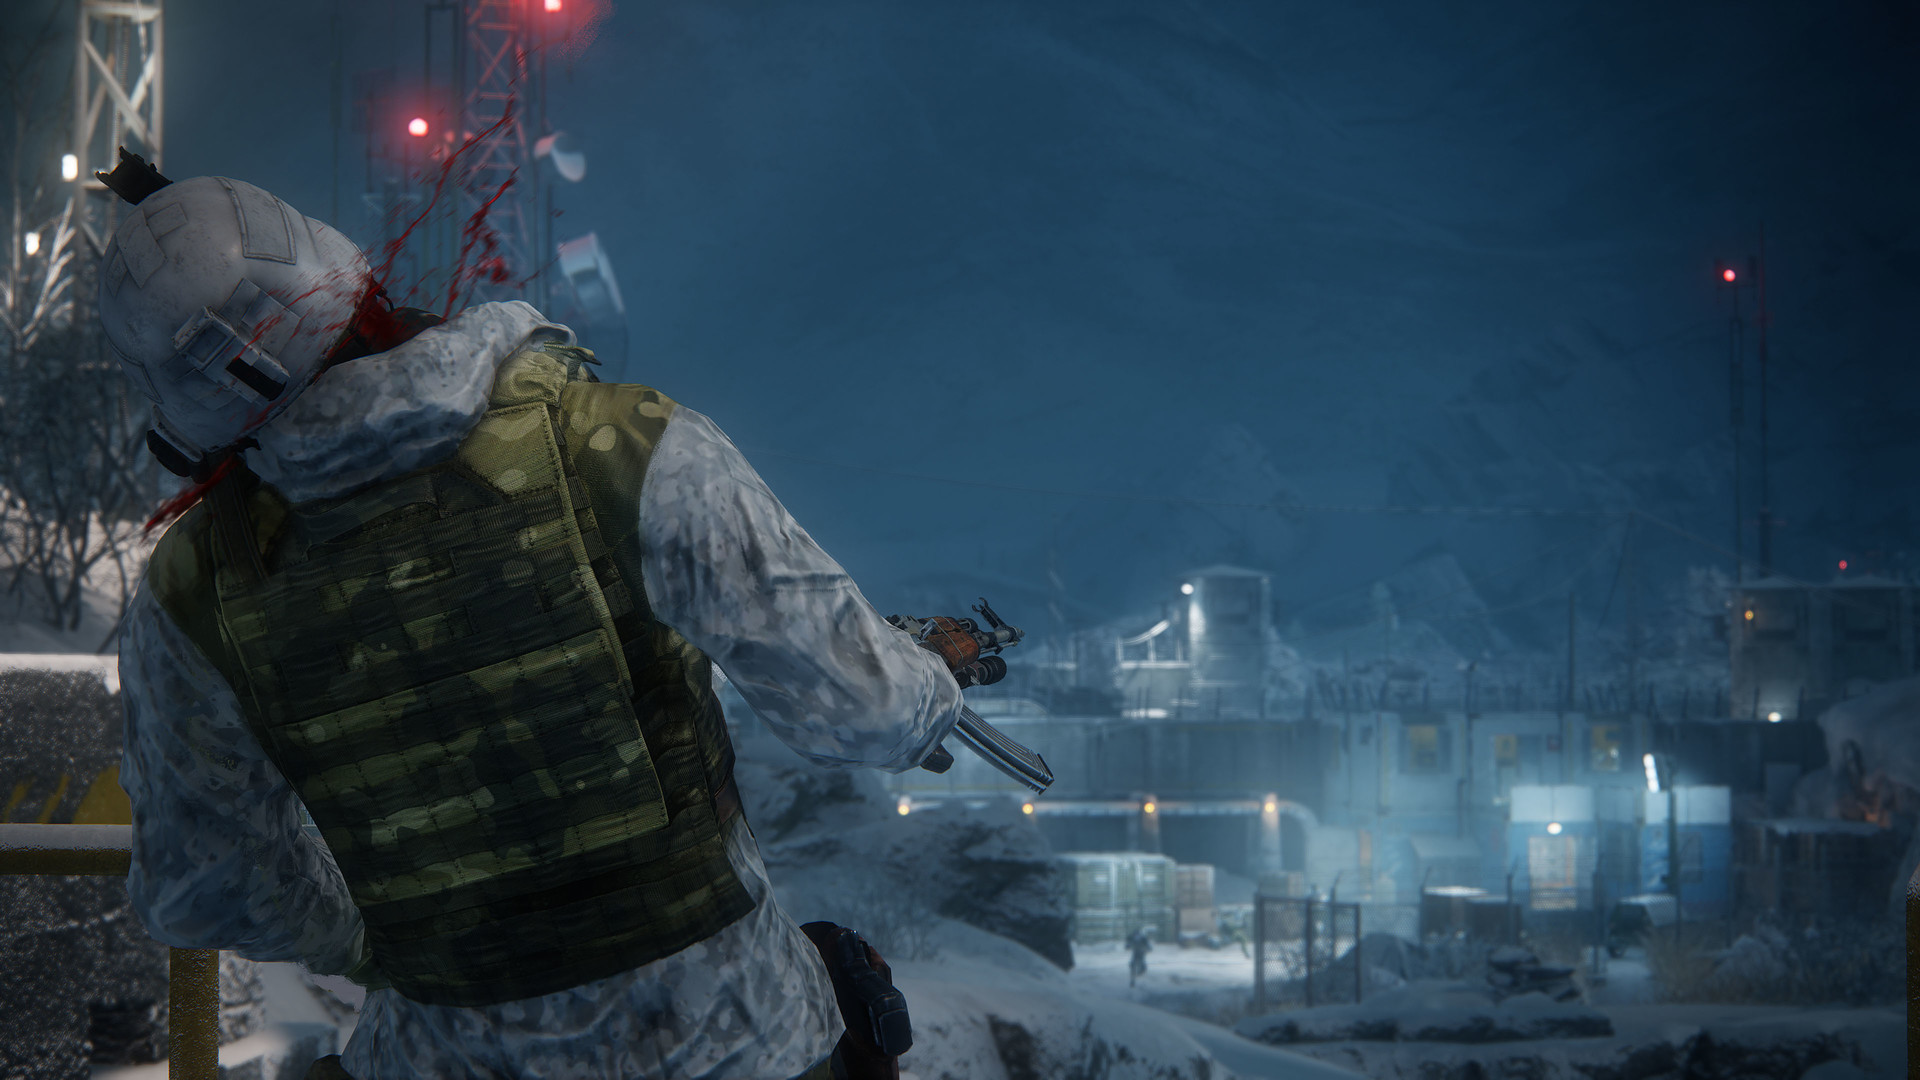 Sniper Ghost Warrior Contracts (CI Games) (RUS|ENG|MULTi) SteamRip by vano_next